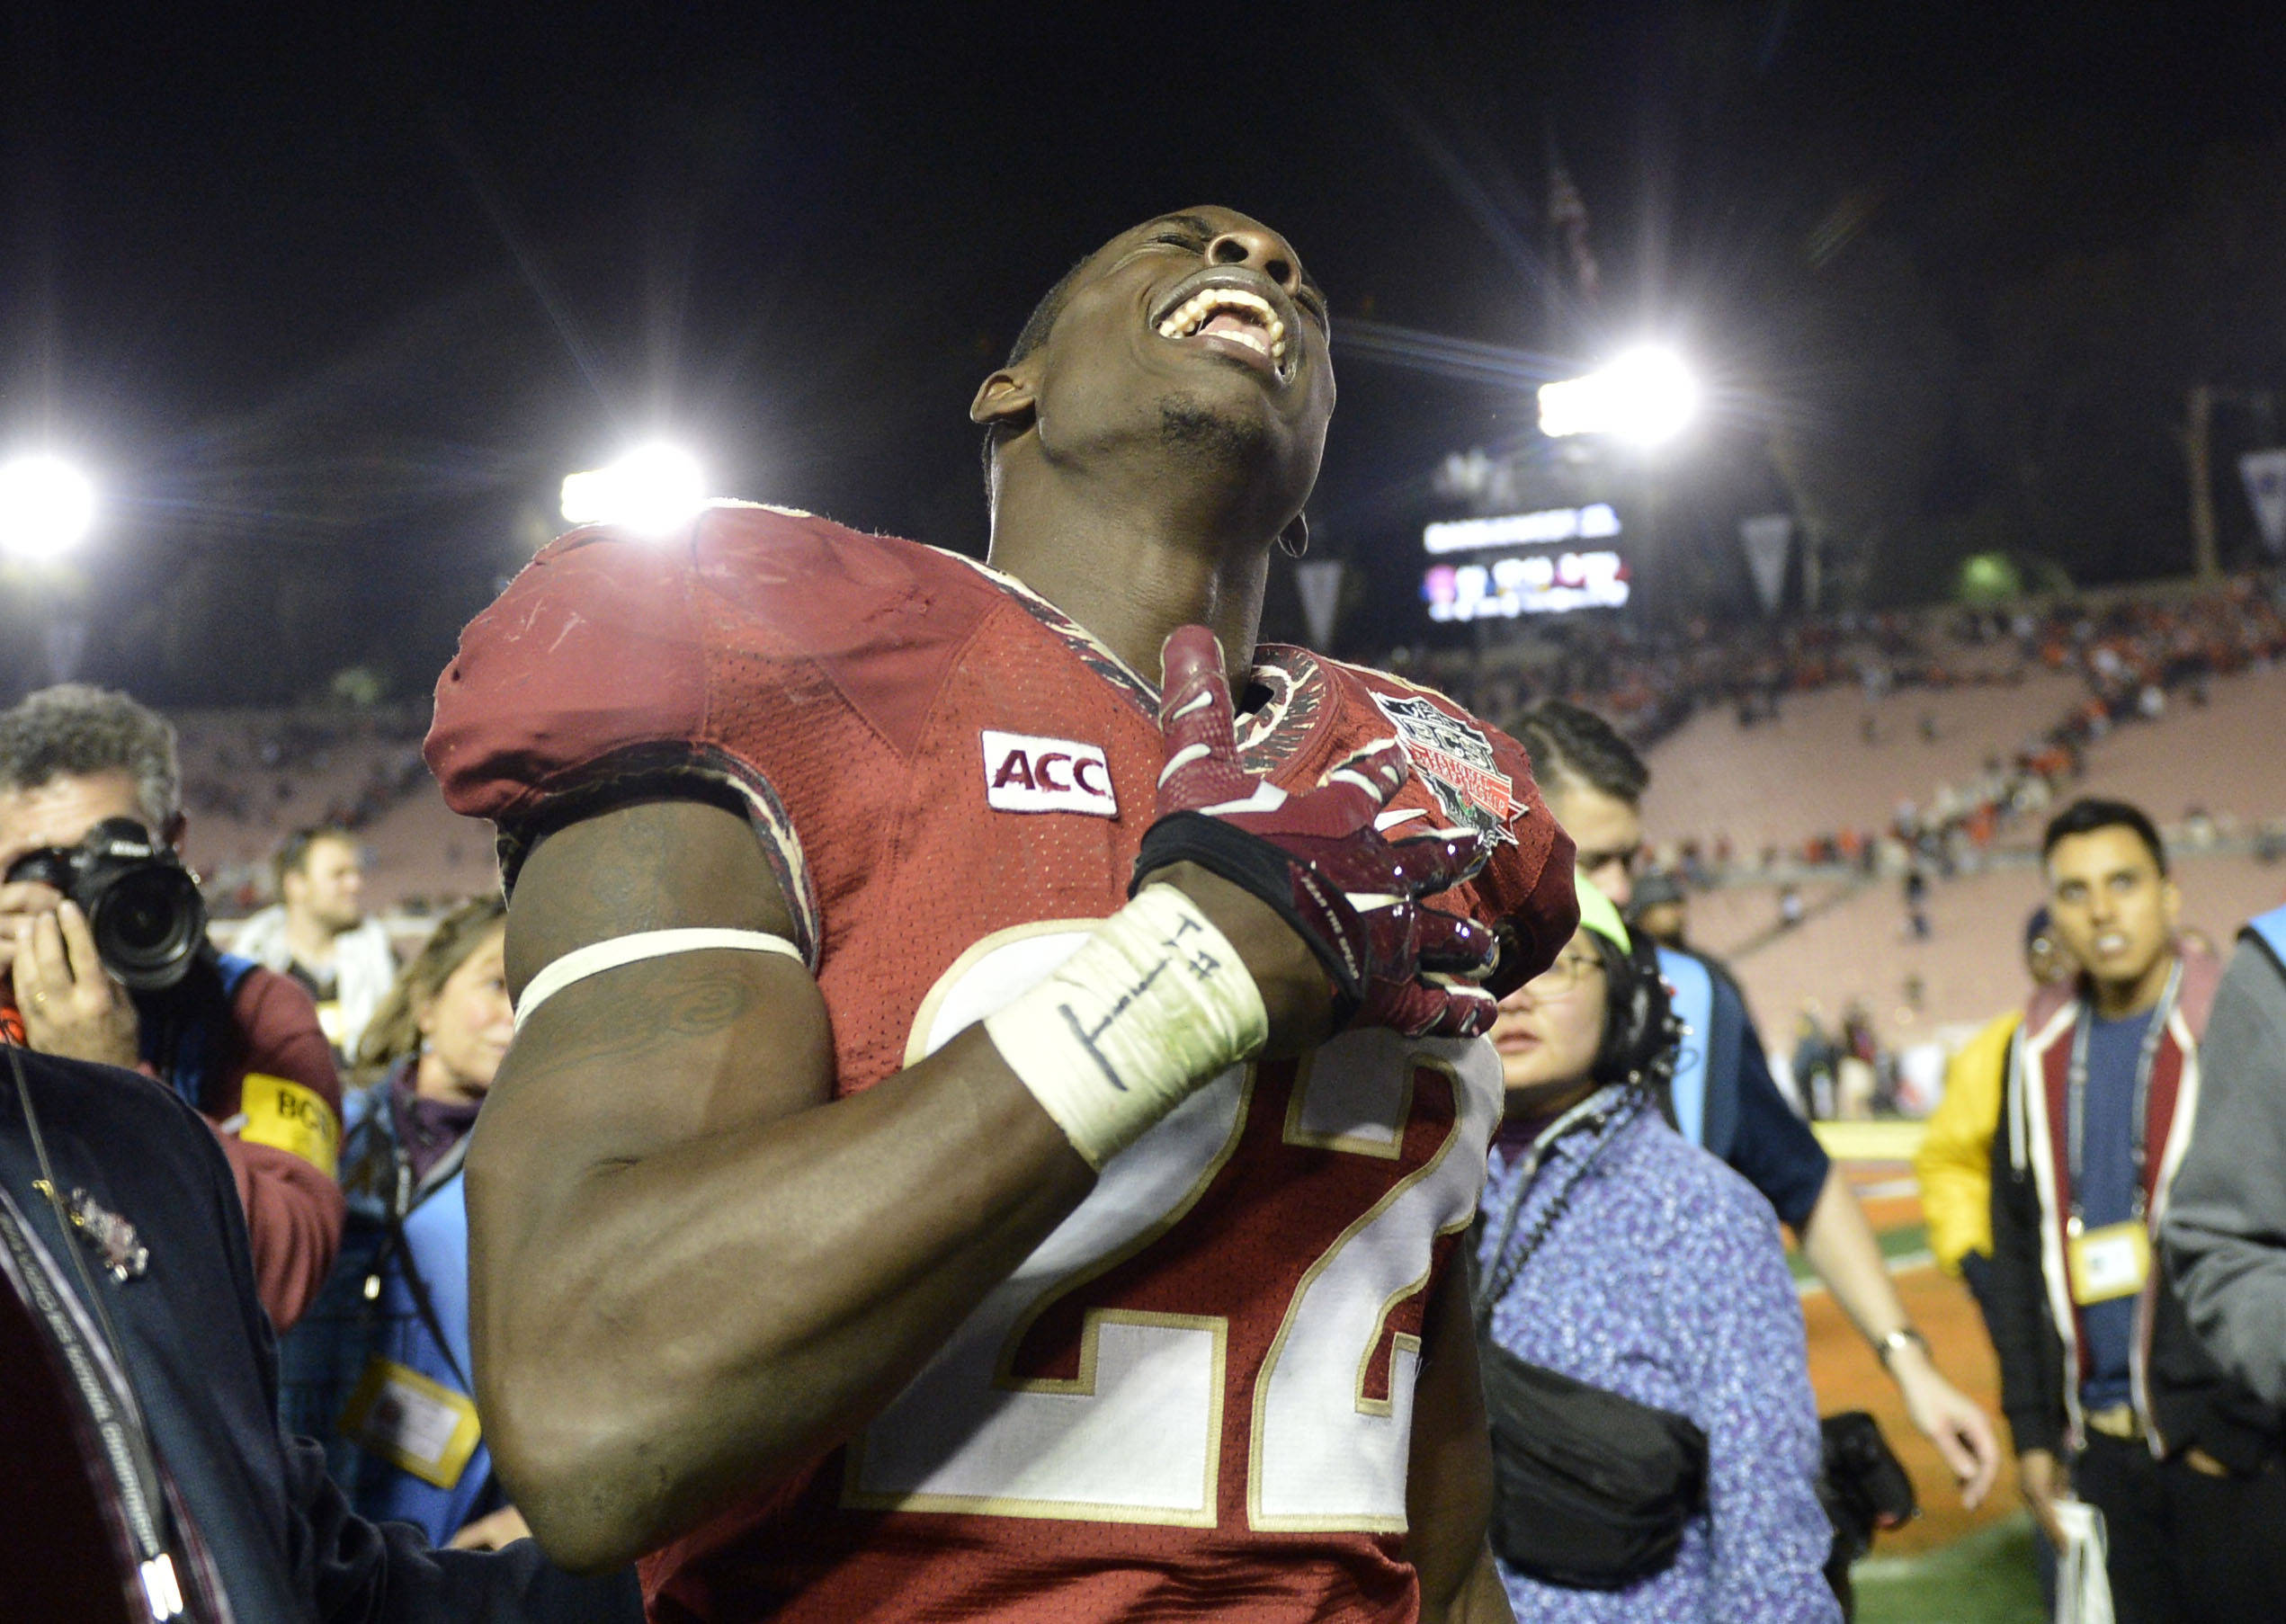 Jan 6, 2014; Pasadena, CA, USA; Florida State Seminoles linebacker Telvin Smith (22) celebrates after the 2014 BCS National Championship game against the Auburn Tigers at the Rose Bowl.  Mandatory Credit: Robert Hanashiro-USA TODAY Sports